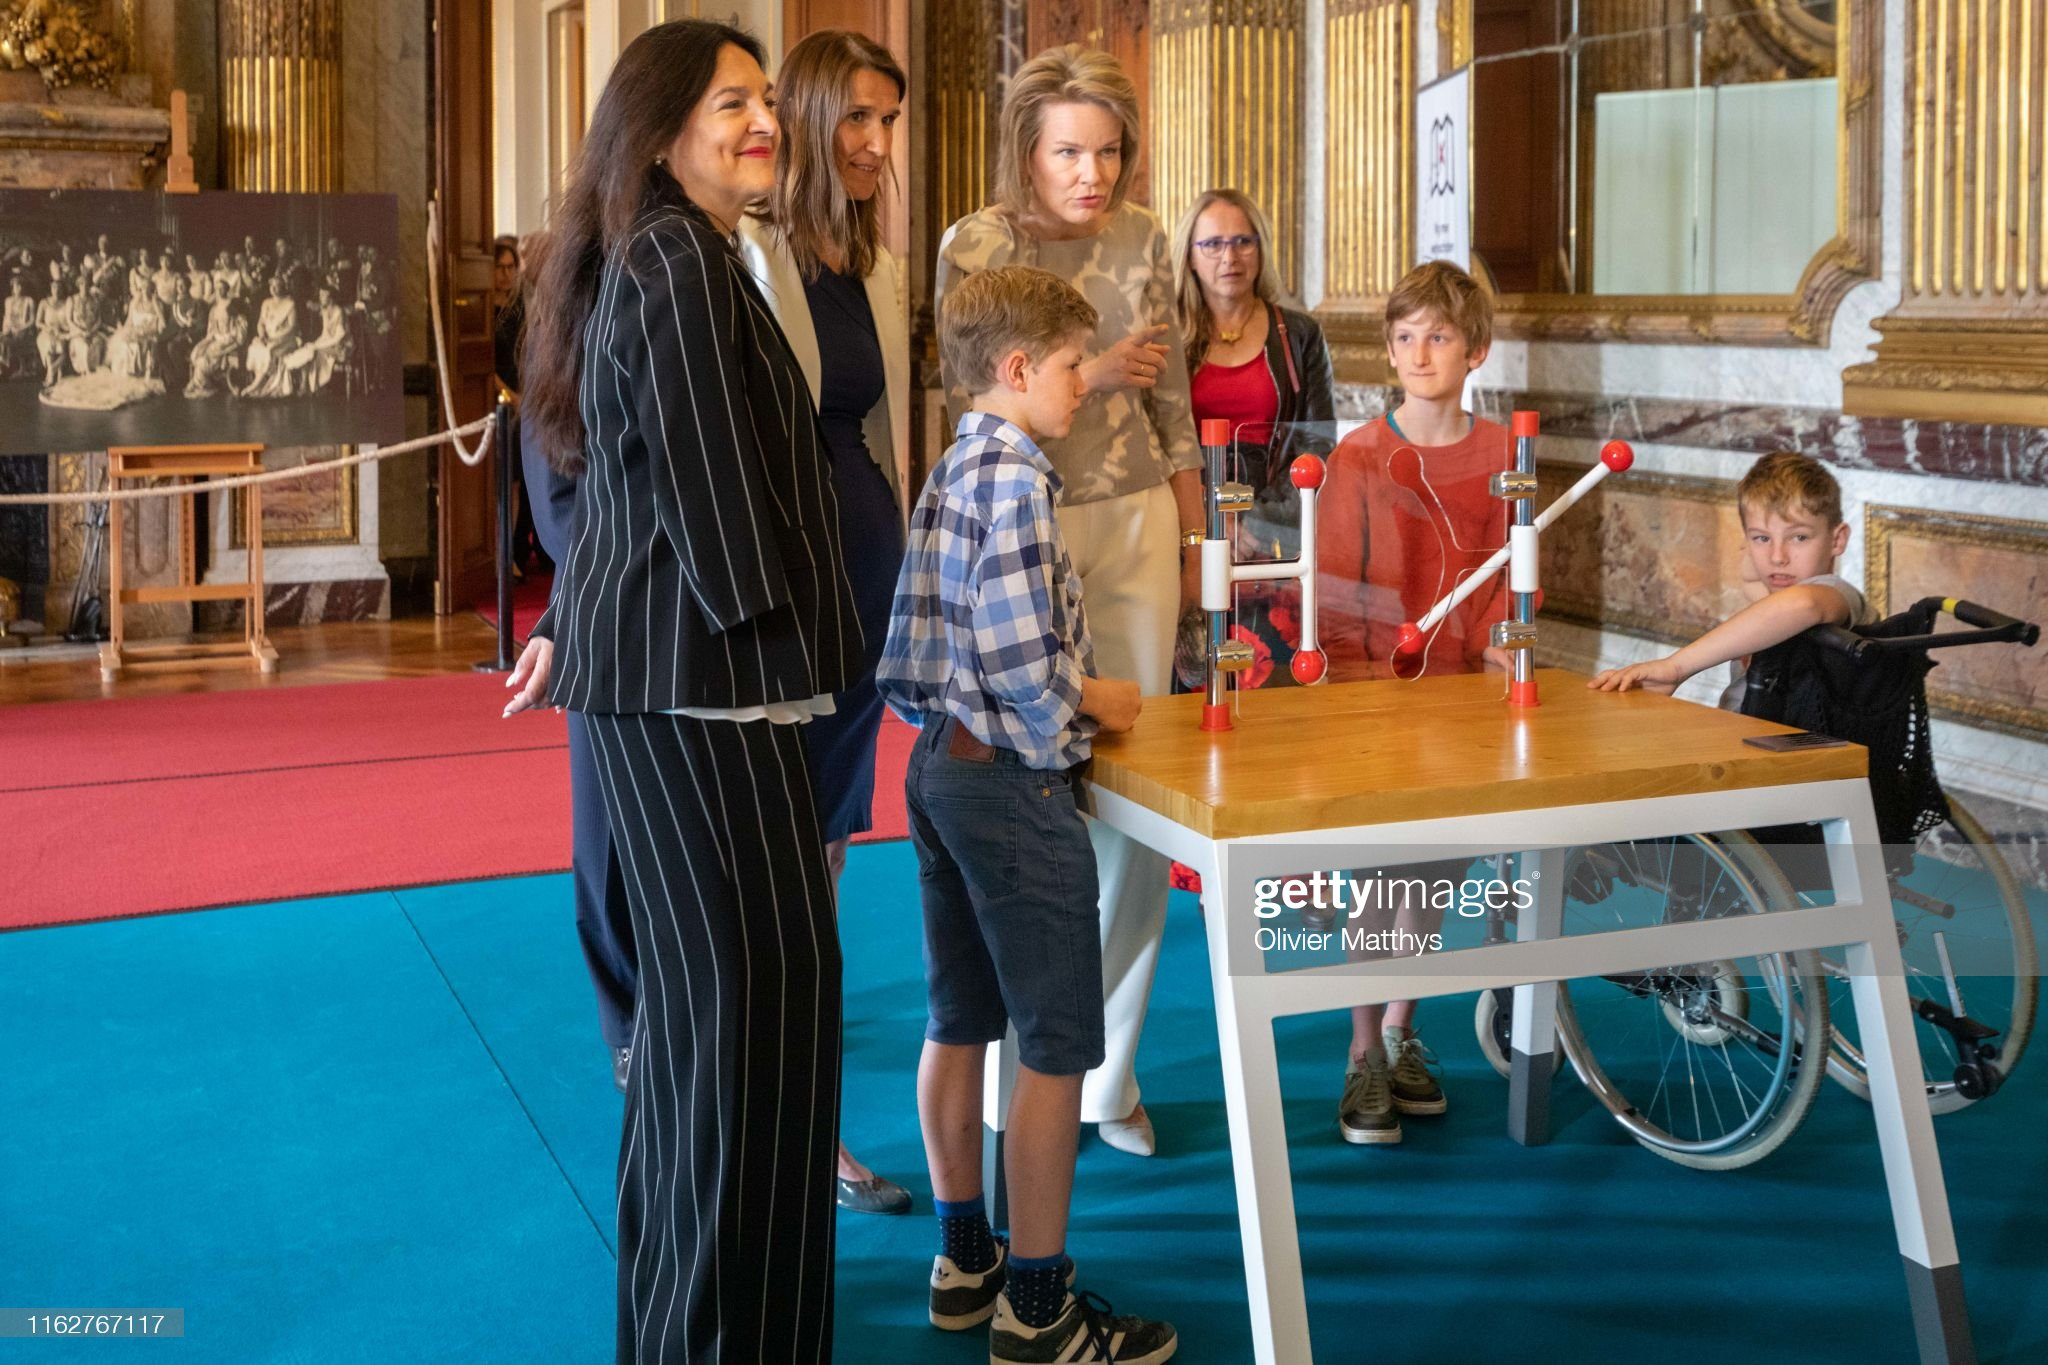 CASA REAL BELGA - Página 54 Queen-mathilde-of-belgium-attends-the-technopolis-section-of-the-at-picture-id1162767117?s=2048x2048